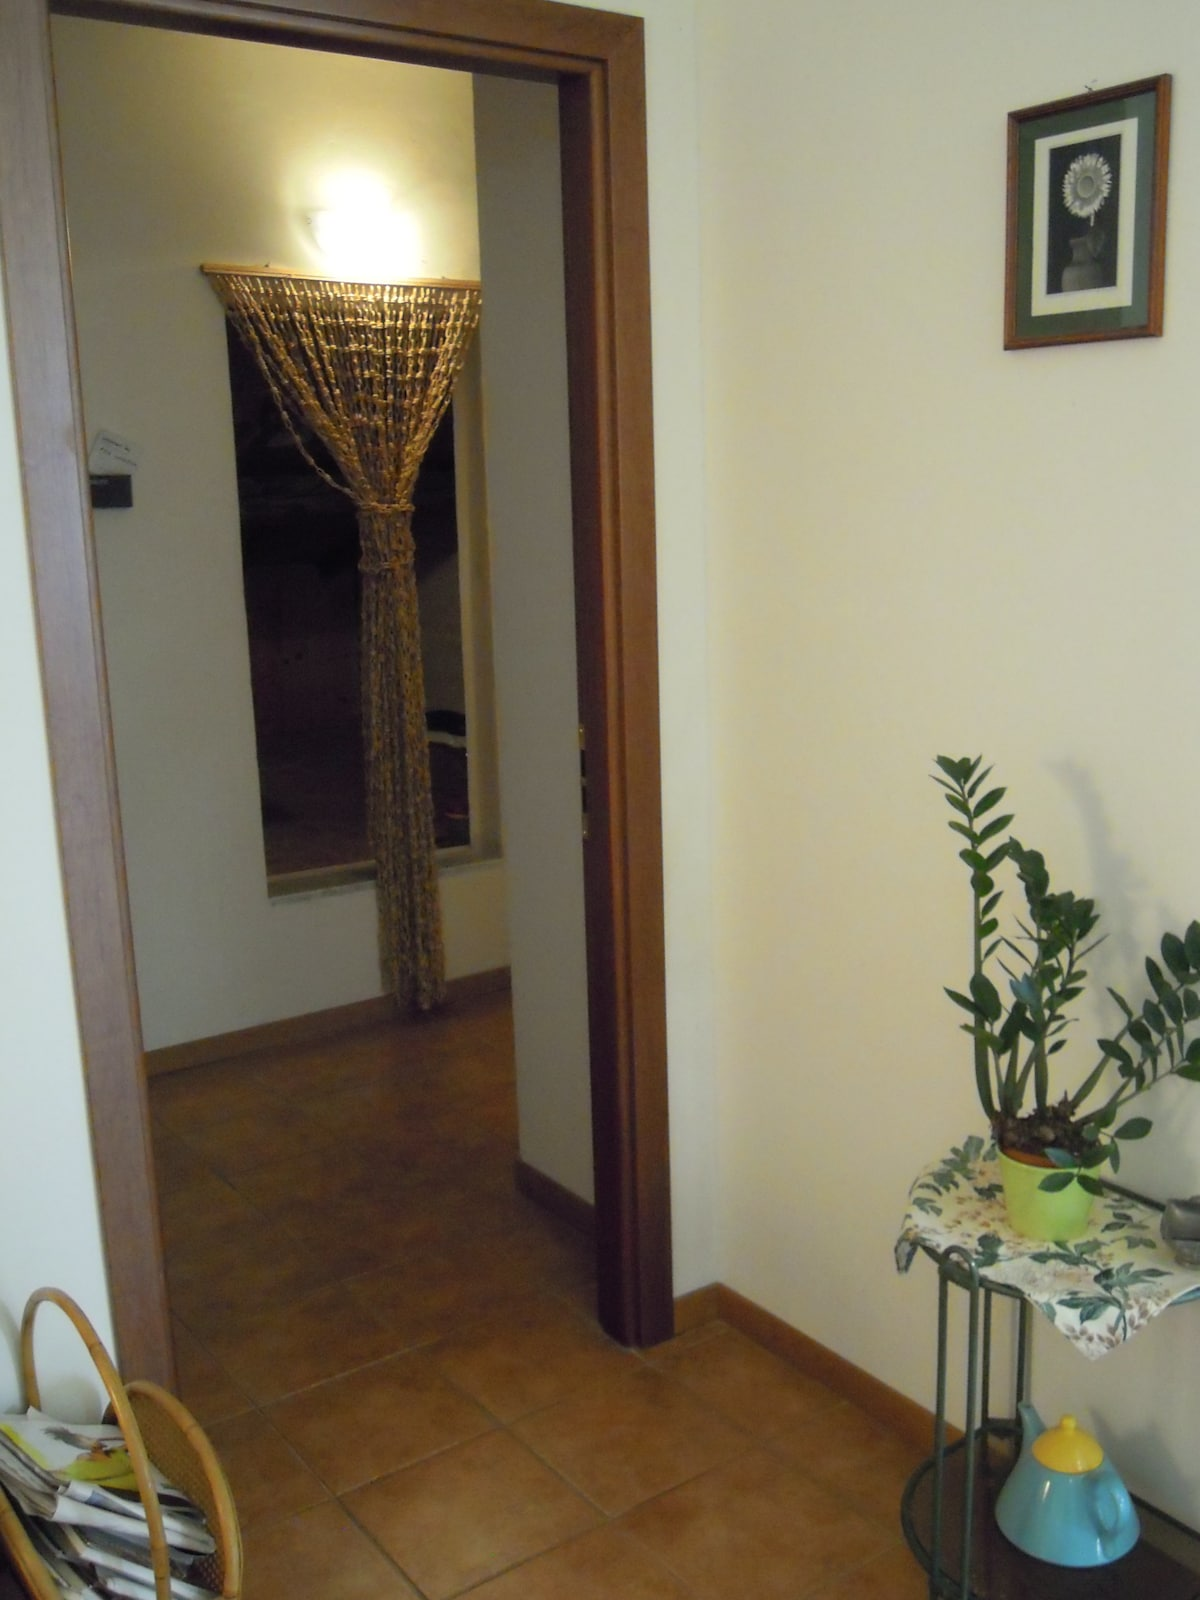 From the living room into the small corridor that leads to the bathroom and bedroom